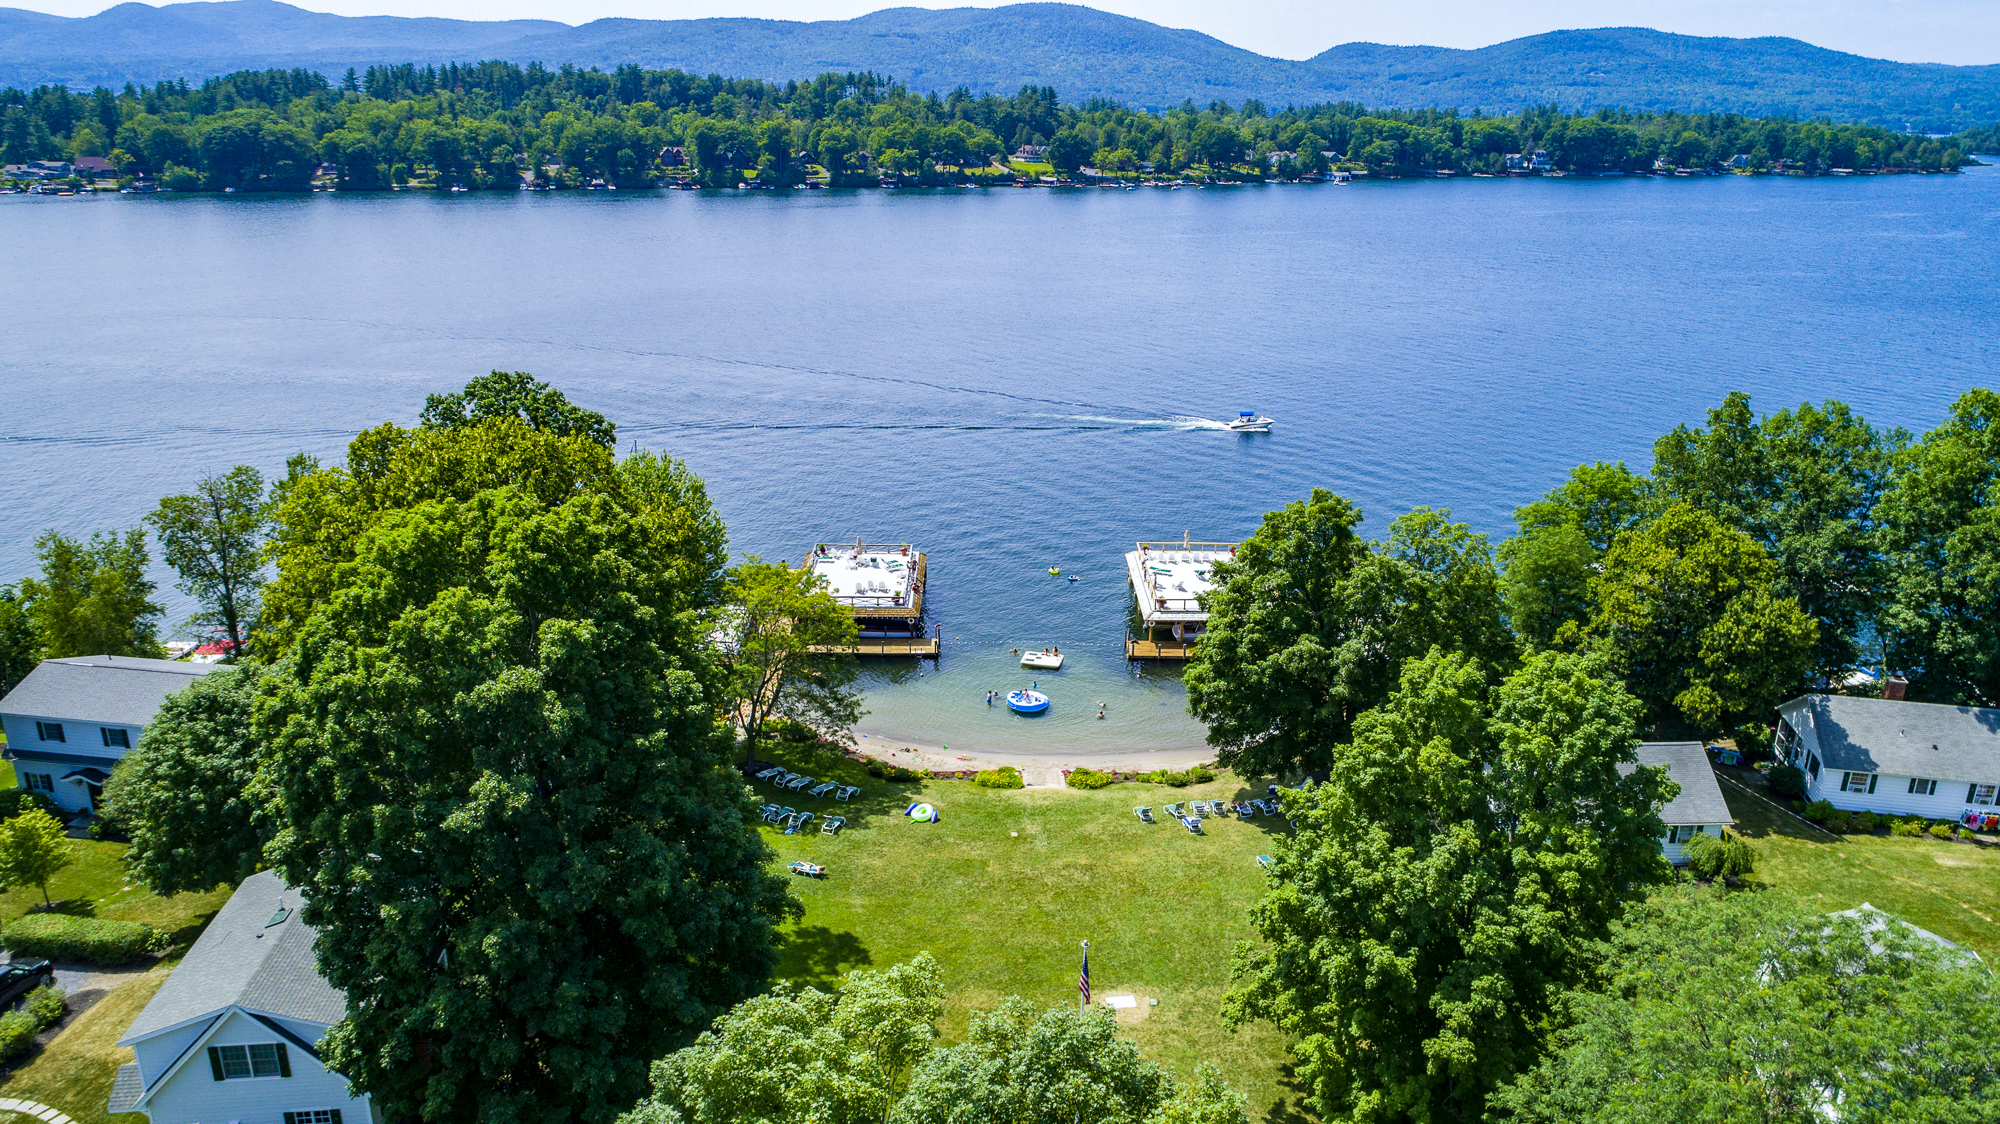 Lake George vacation cabin rentals with private beach and boathouse sundecks at Takundewide Cottages on Lake George